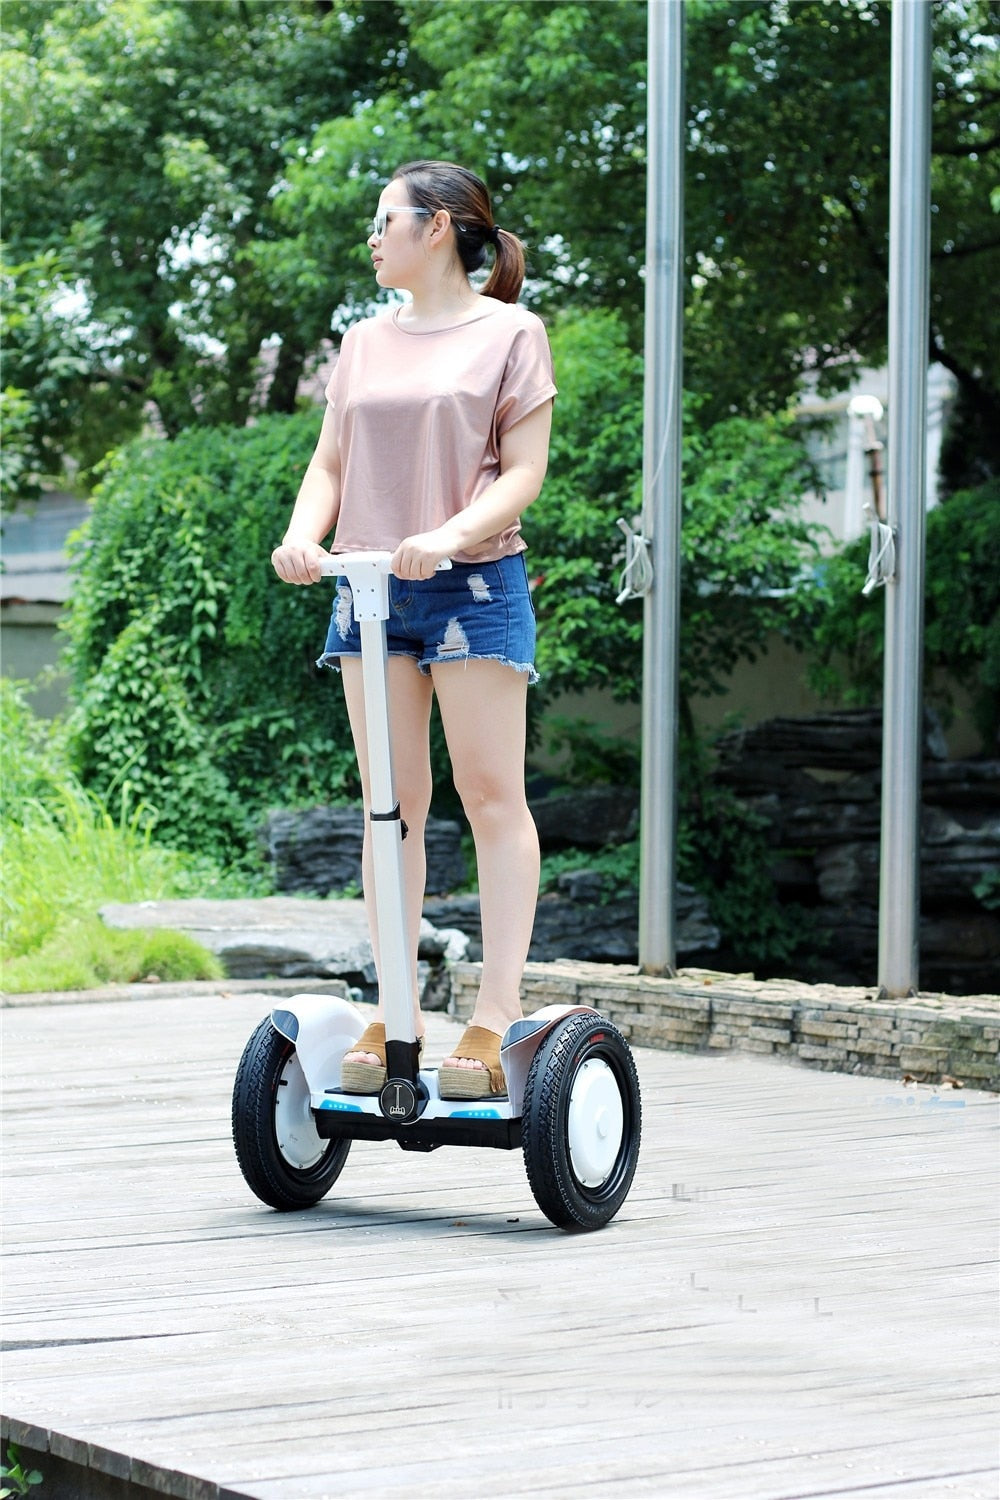 Daibot Electric Scooter Hoverboard with Handle - BarnKey.com